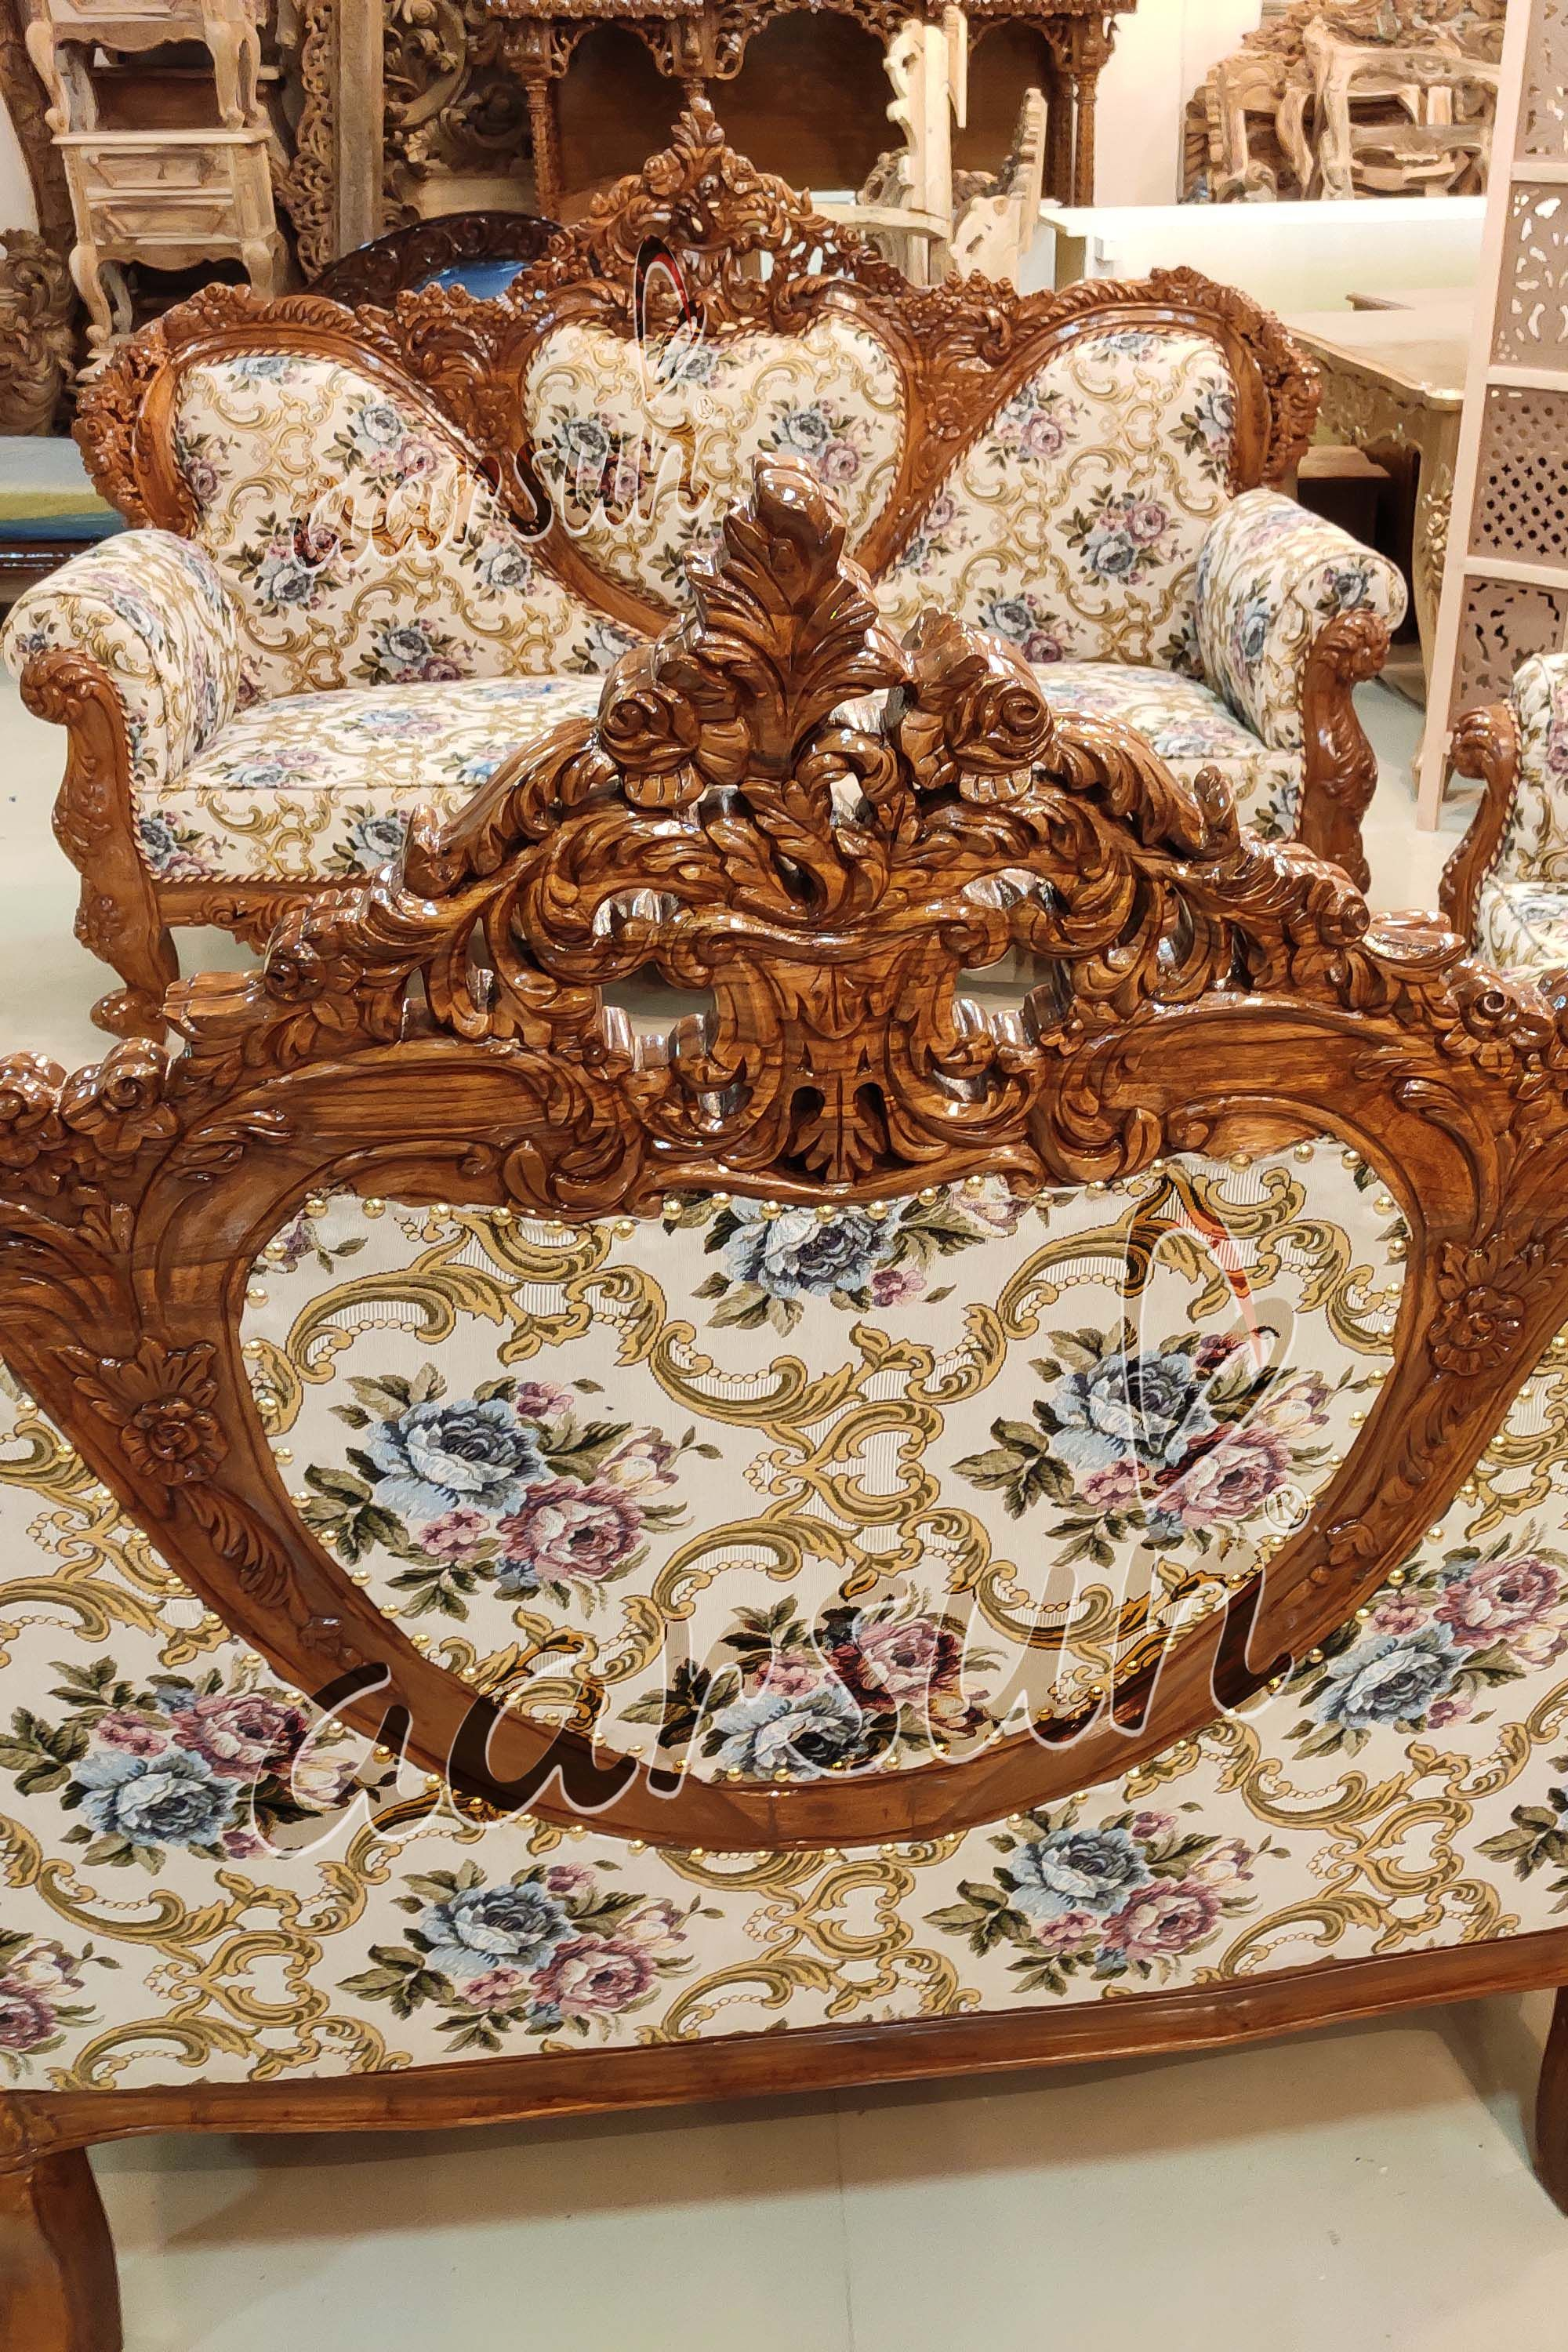 Both Side Carved Wooden Sofa Beautiful Back And Front View Aarsun Carved Wooden Sofa Sofa Set Beautiful Sofas